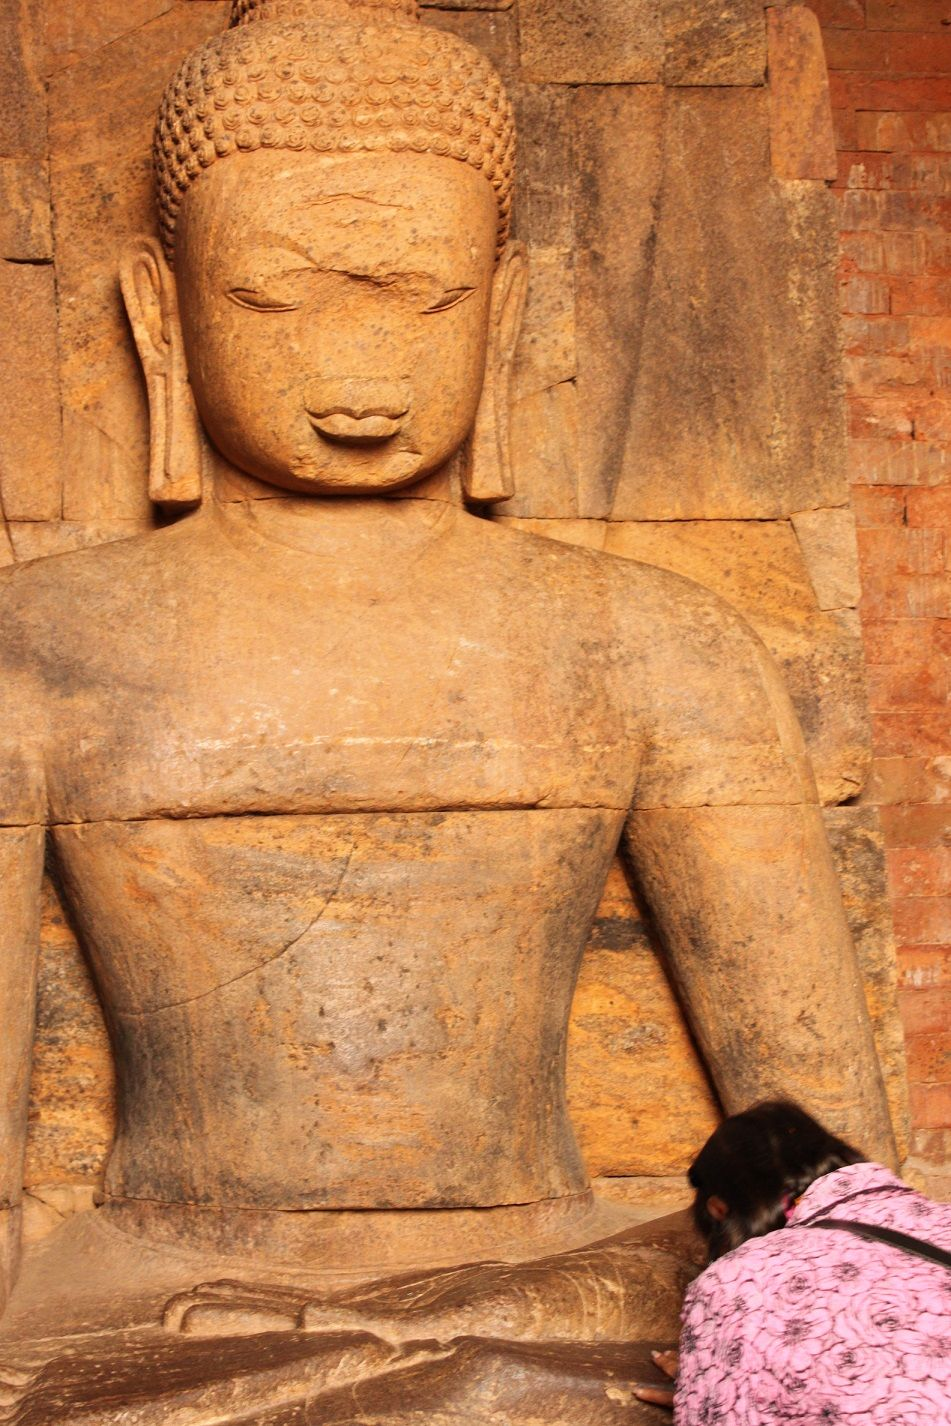 #Buddhism | #Buddha statue at the centre of a monastery in Ratnagiri, #Odhisa. The nose appears to have been roughly hewn out of the stone by vandals.